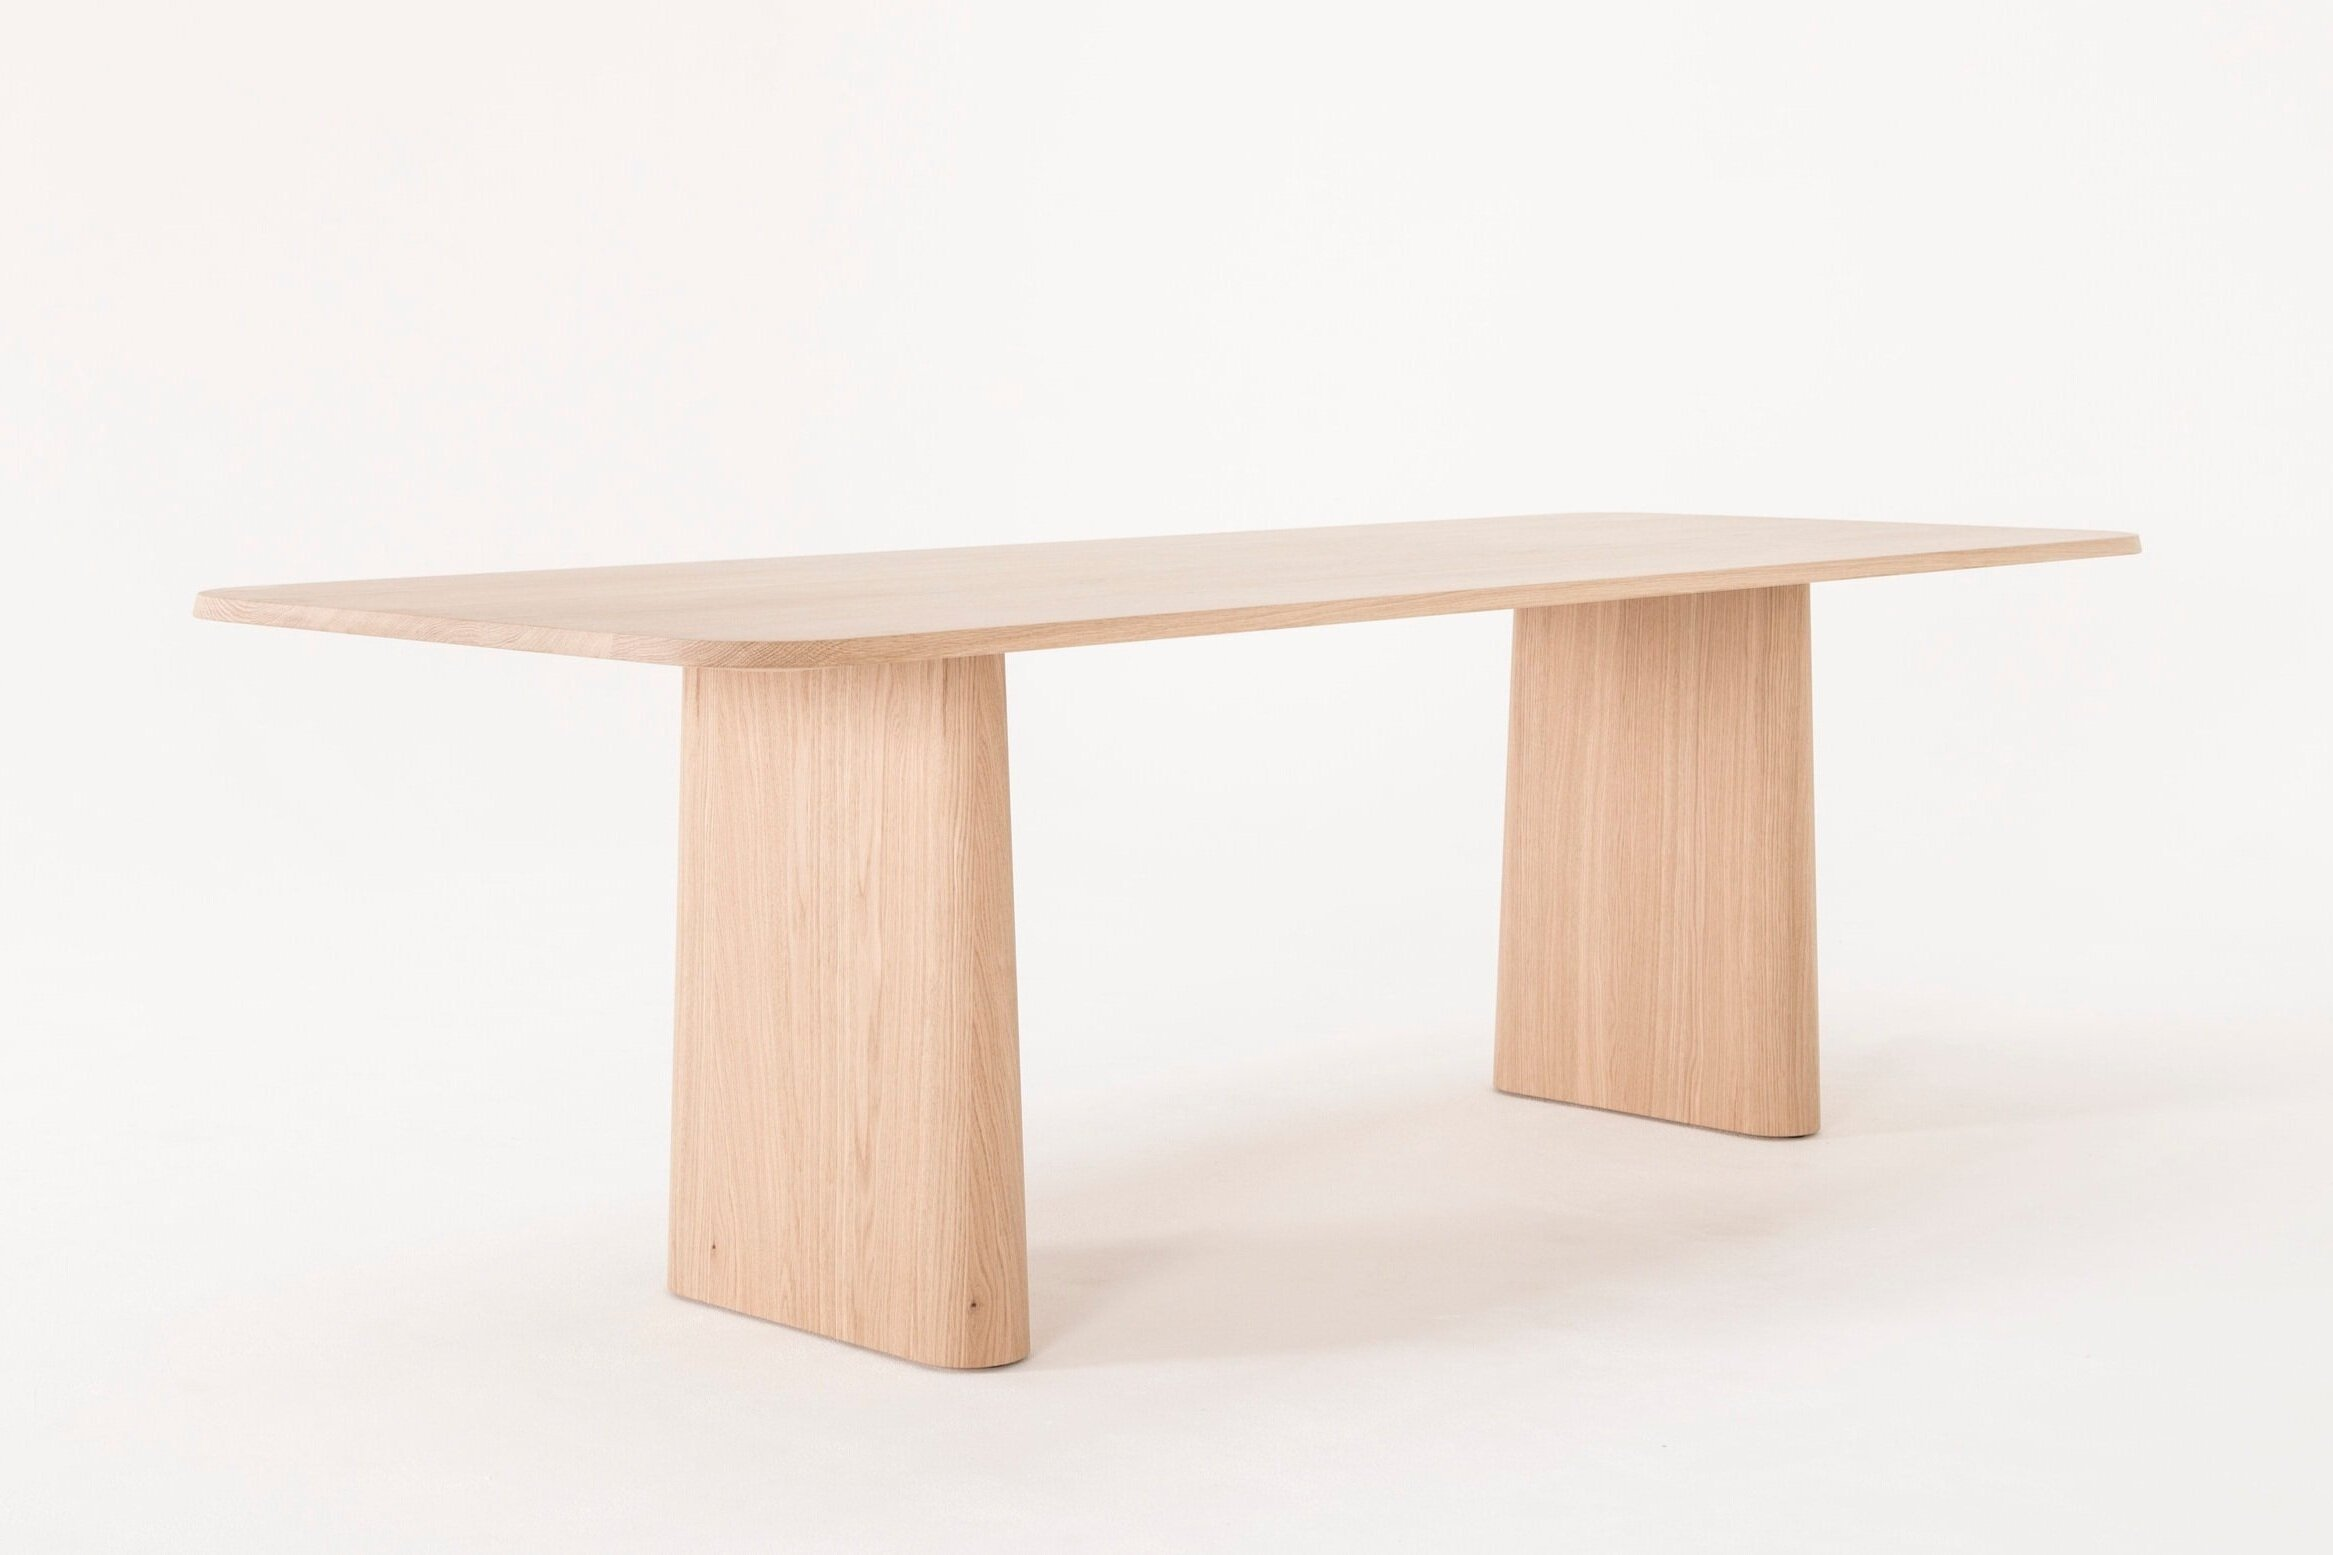 frank-london-collection-table-21-february-2018-0630.jpg